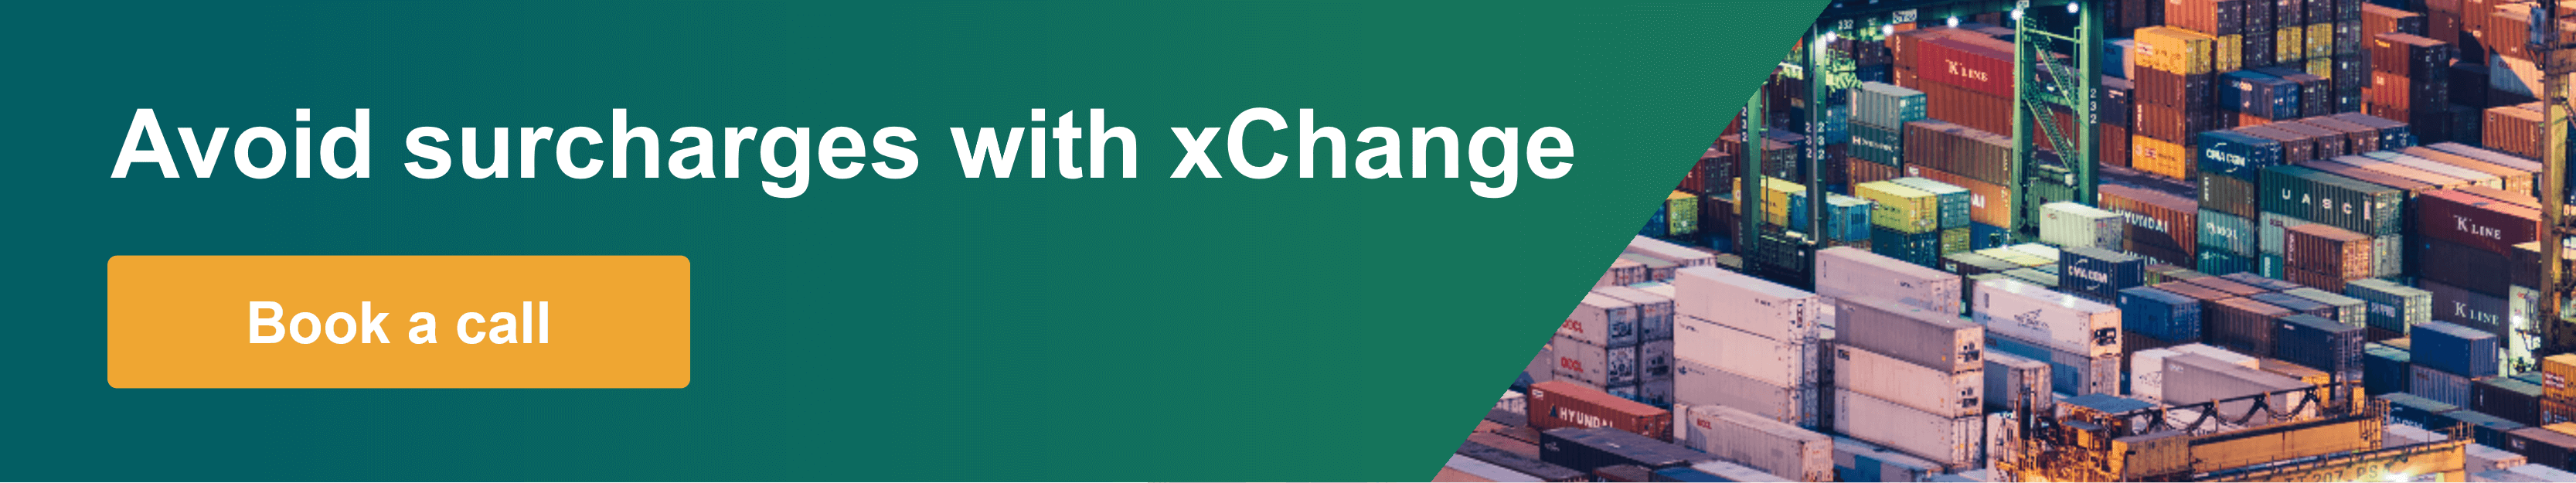 Reduce your surcharges with xChange